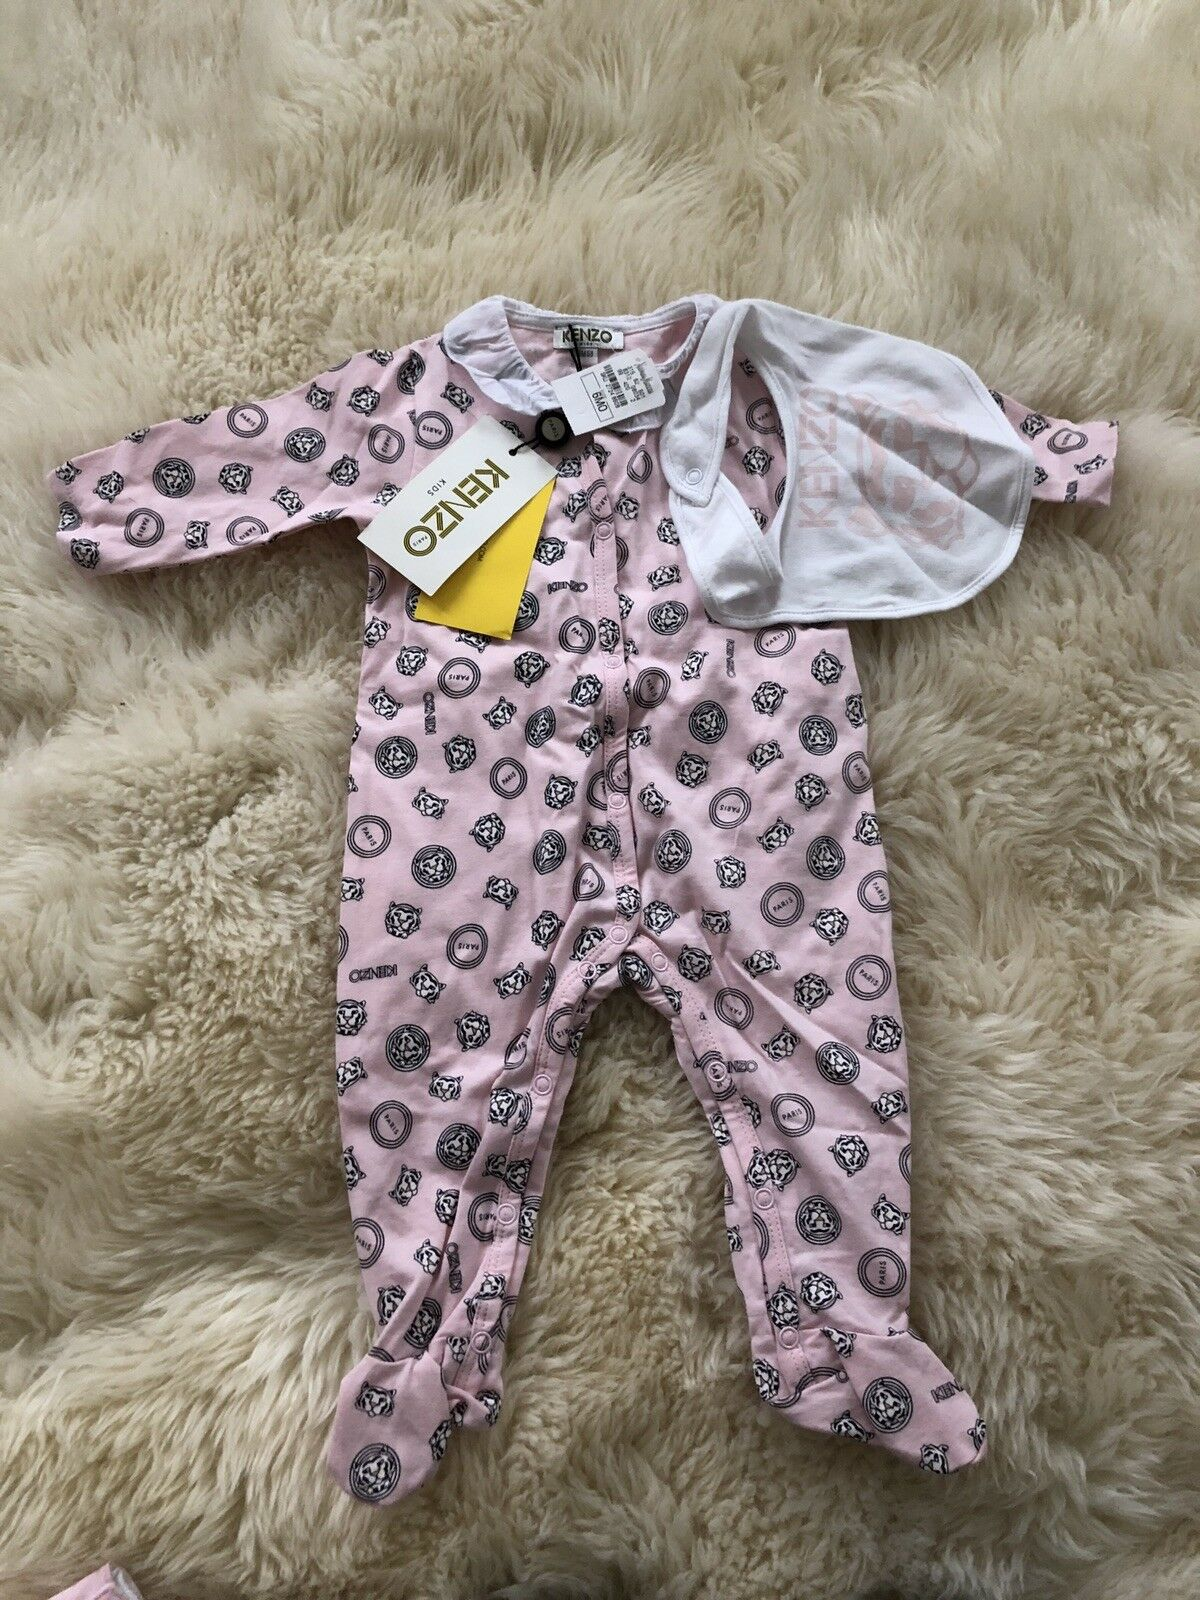 9a65a6ce KENZO Baby Toddler Tiger Romper Set Pink 3m 3 Months One Piece ...